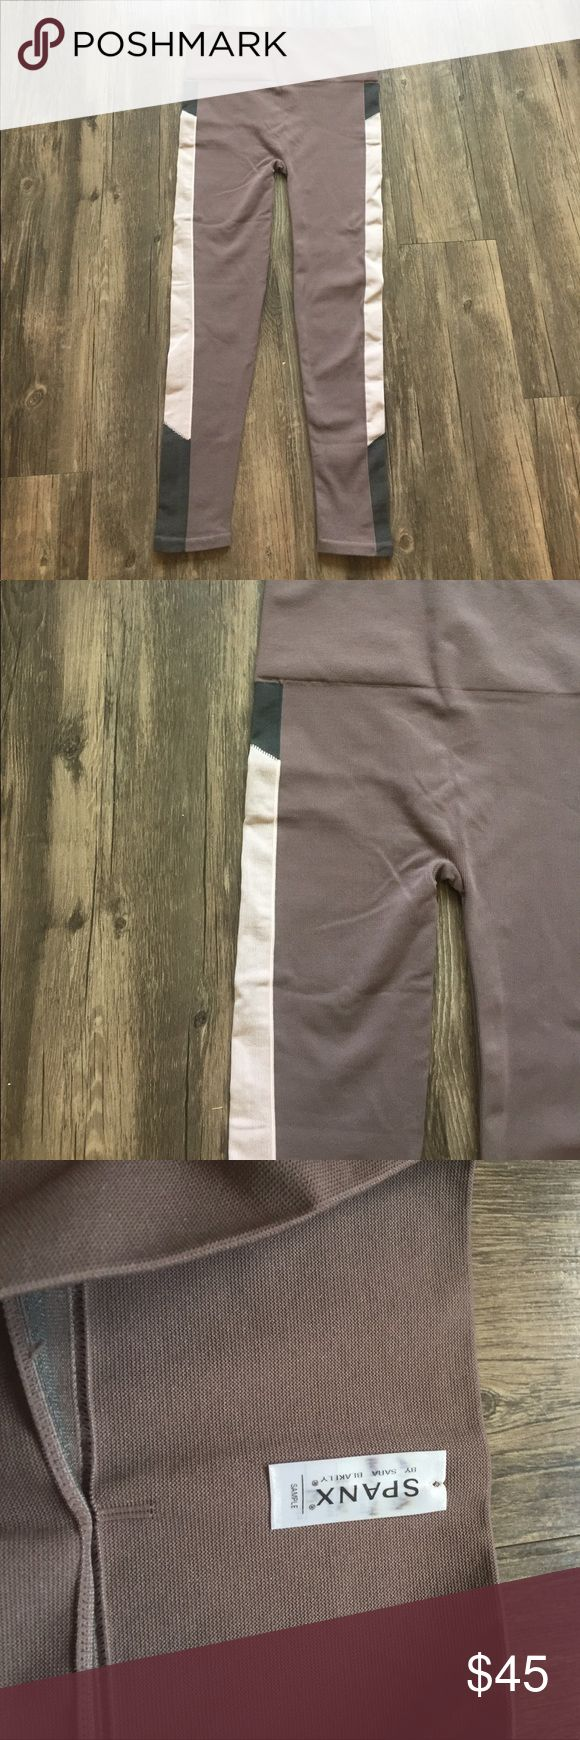 NWOT Spanx Leggings New without tags. Spanx leggings. Fit between size small-medium. SPANX Pants Leggings